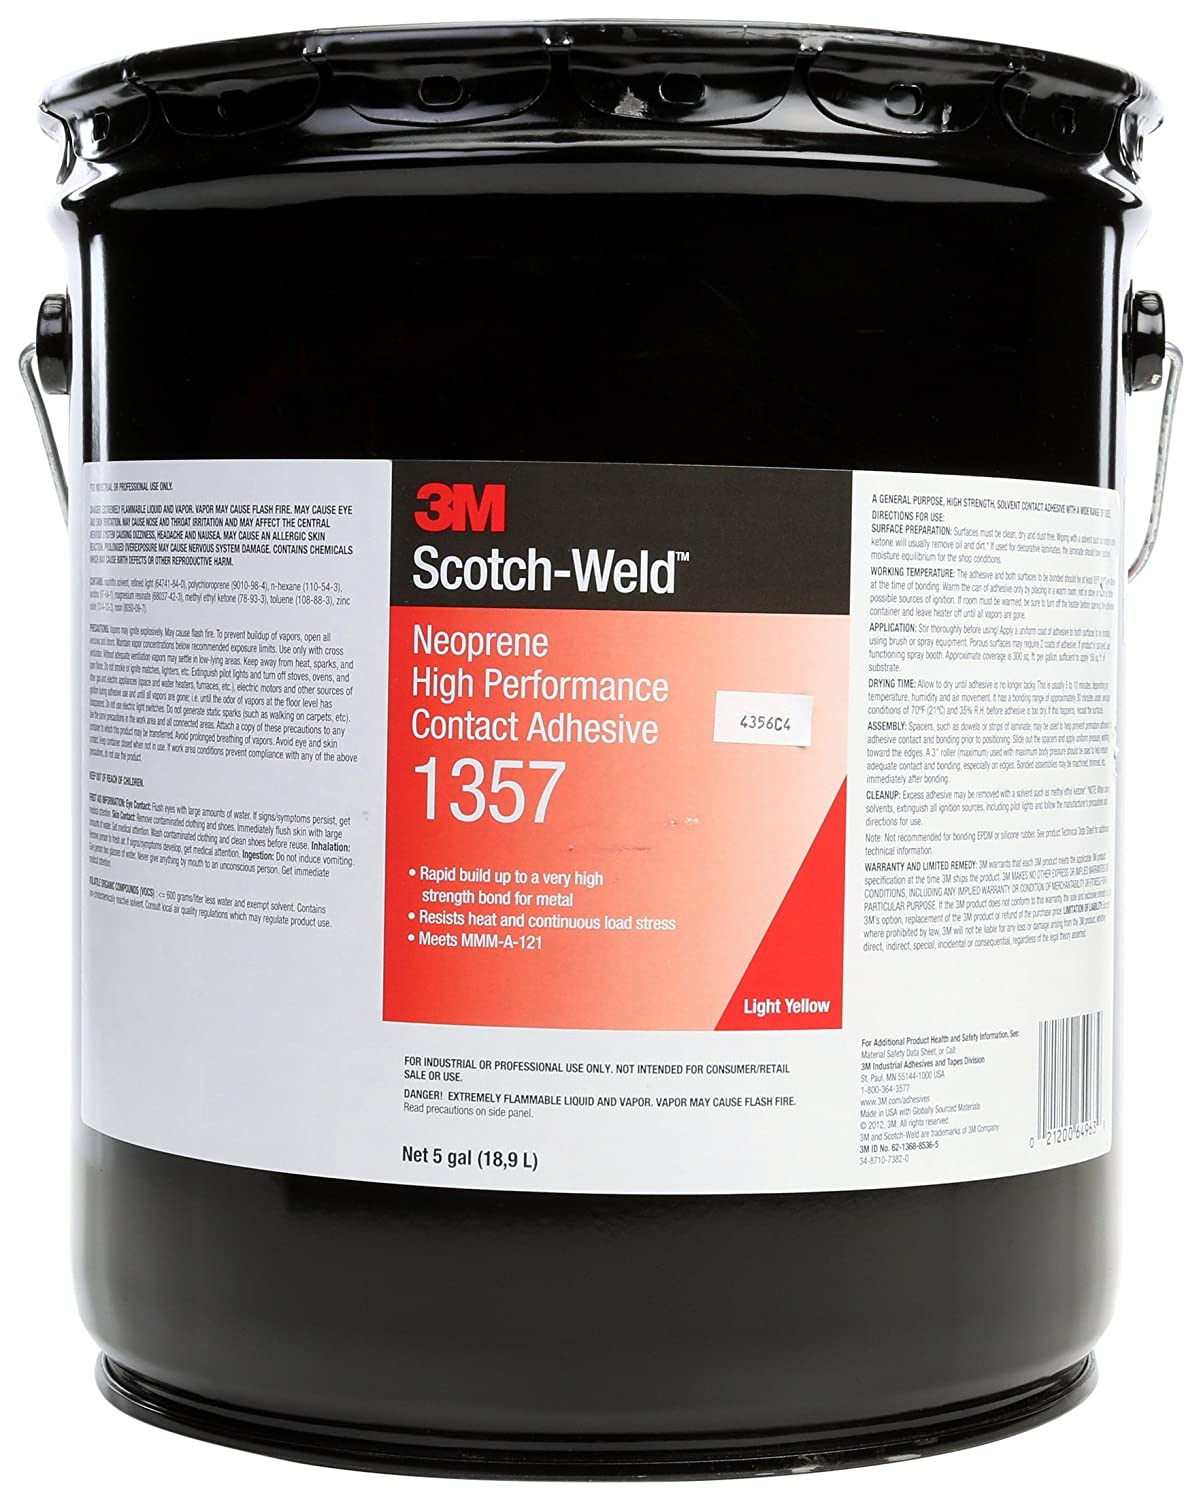 3M(TM) Neoprene High Performance Contact Adhesive 1357 Gray-Green, 1 Gallon